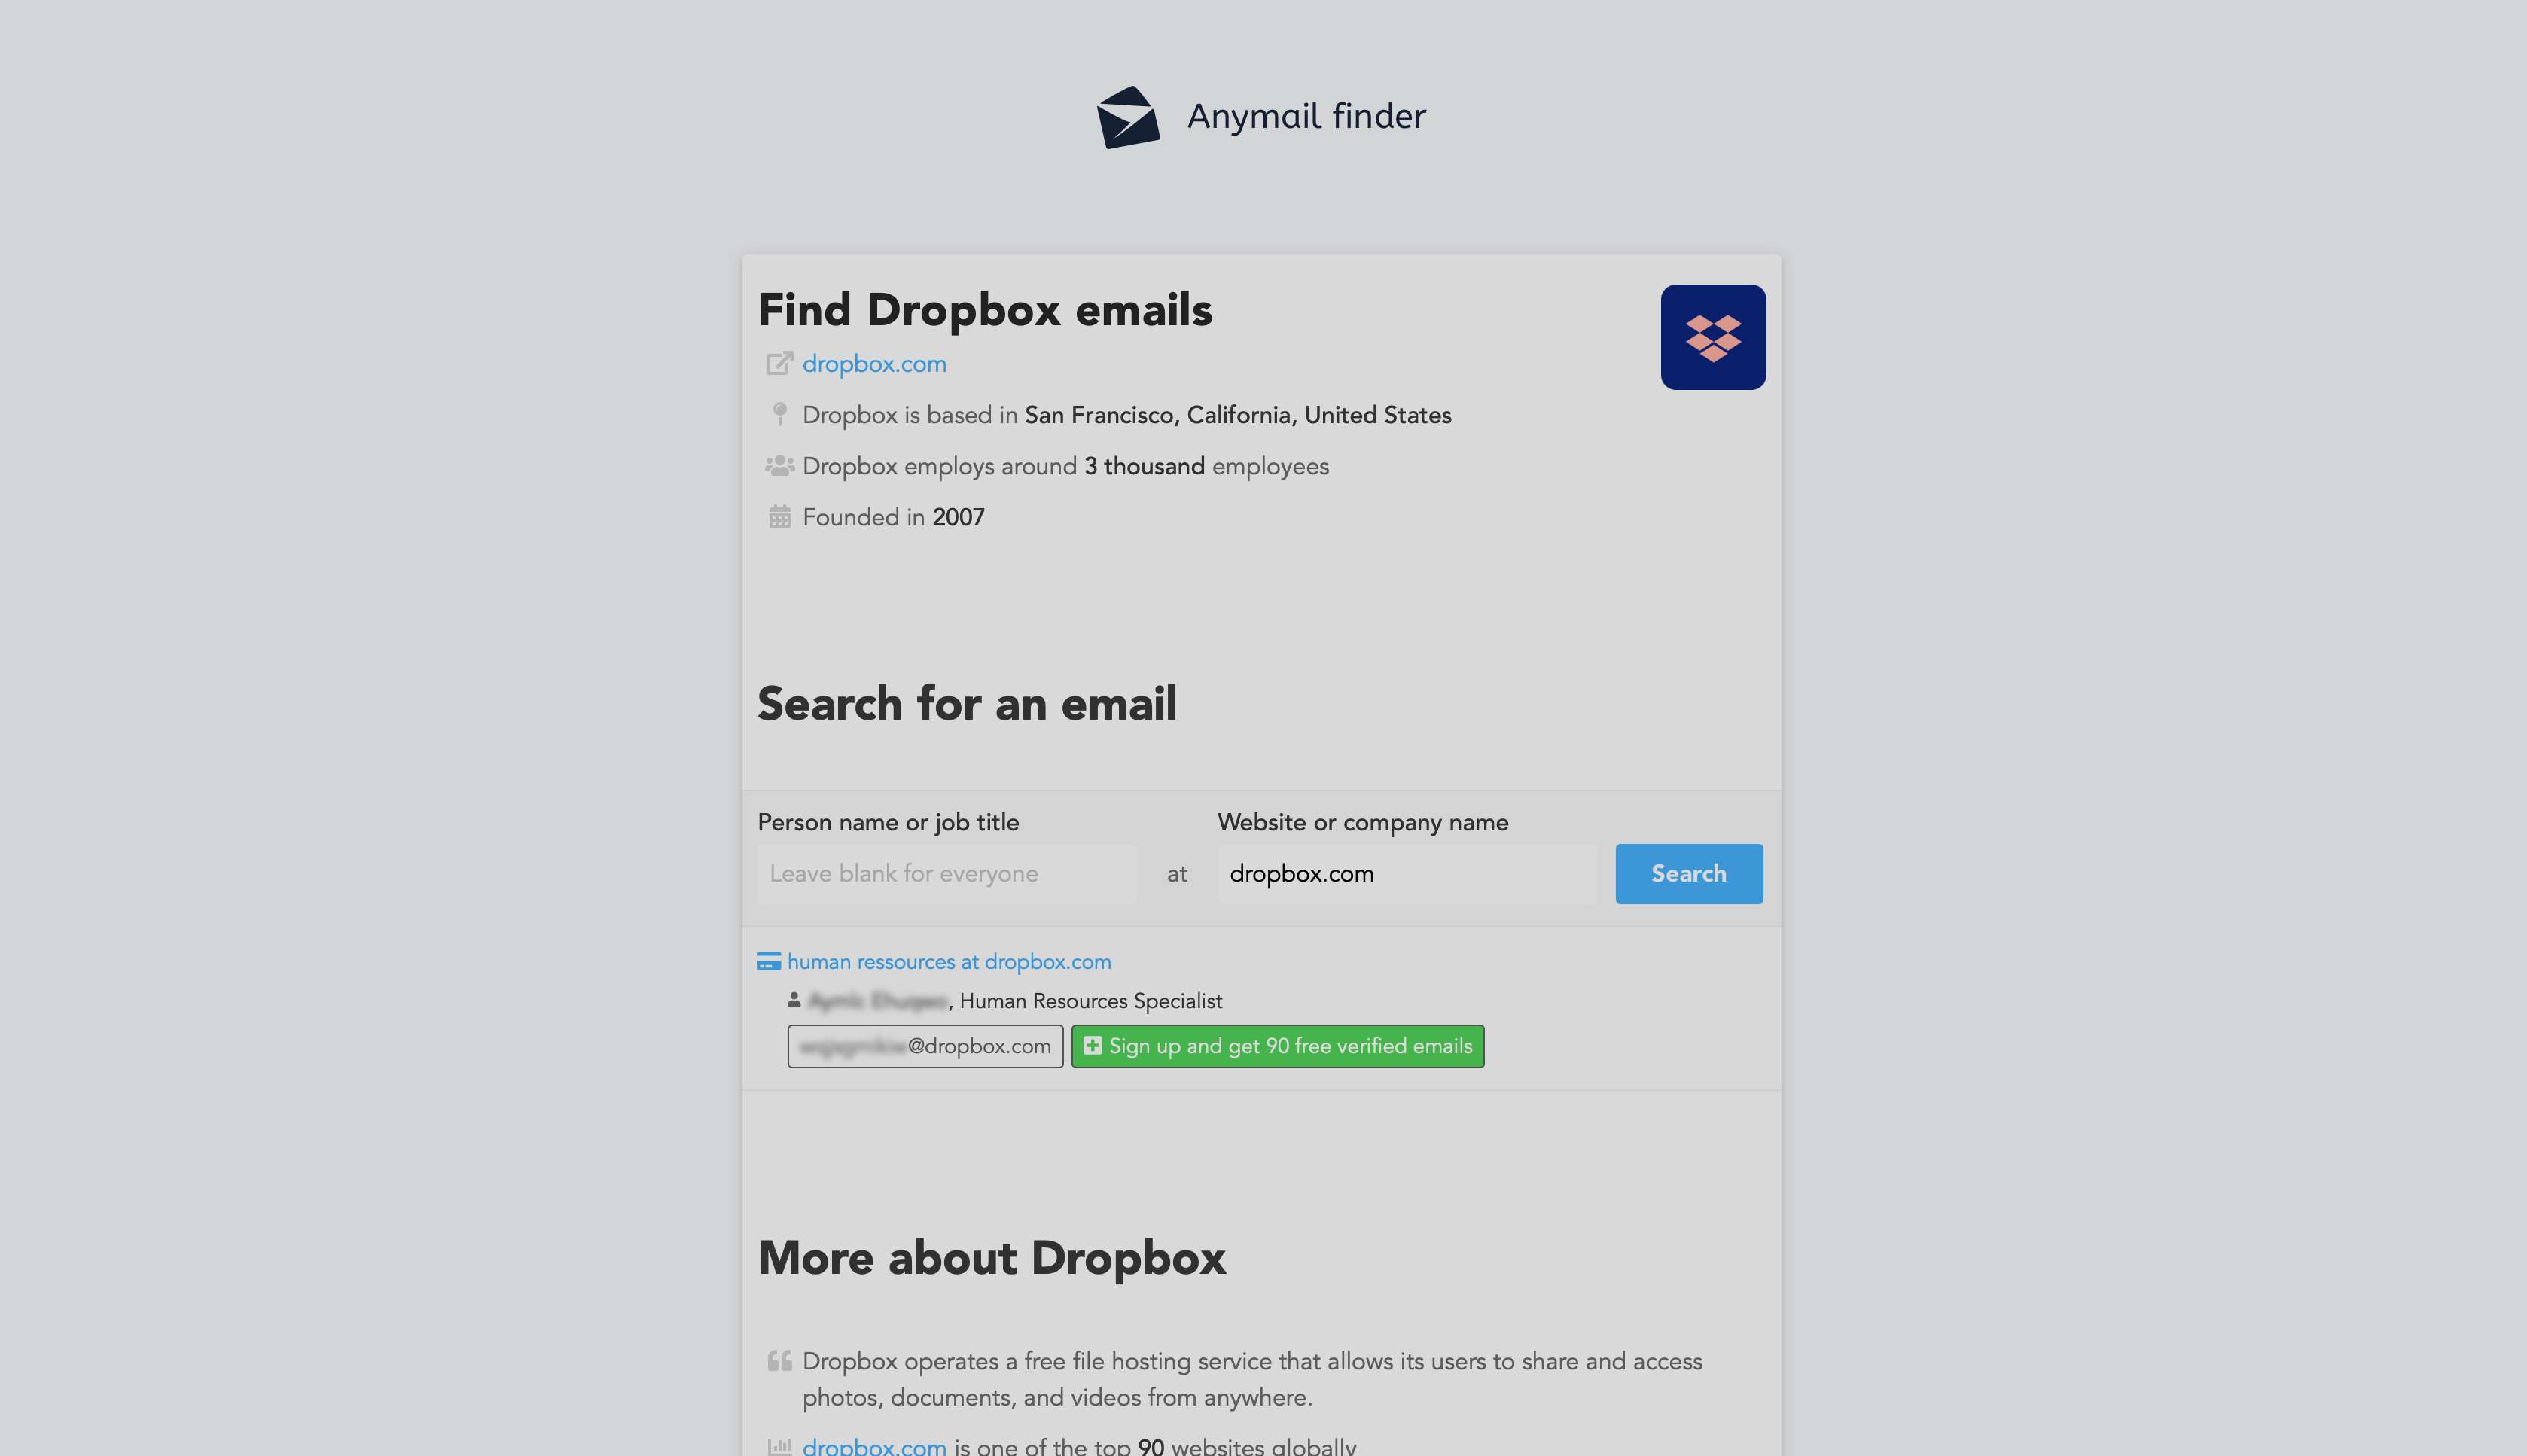 Top best Email Finder and B2B enrichment tool: Anymail Finder